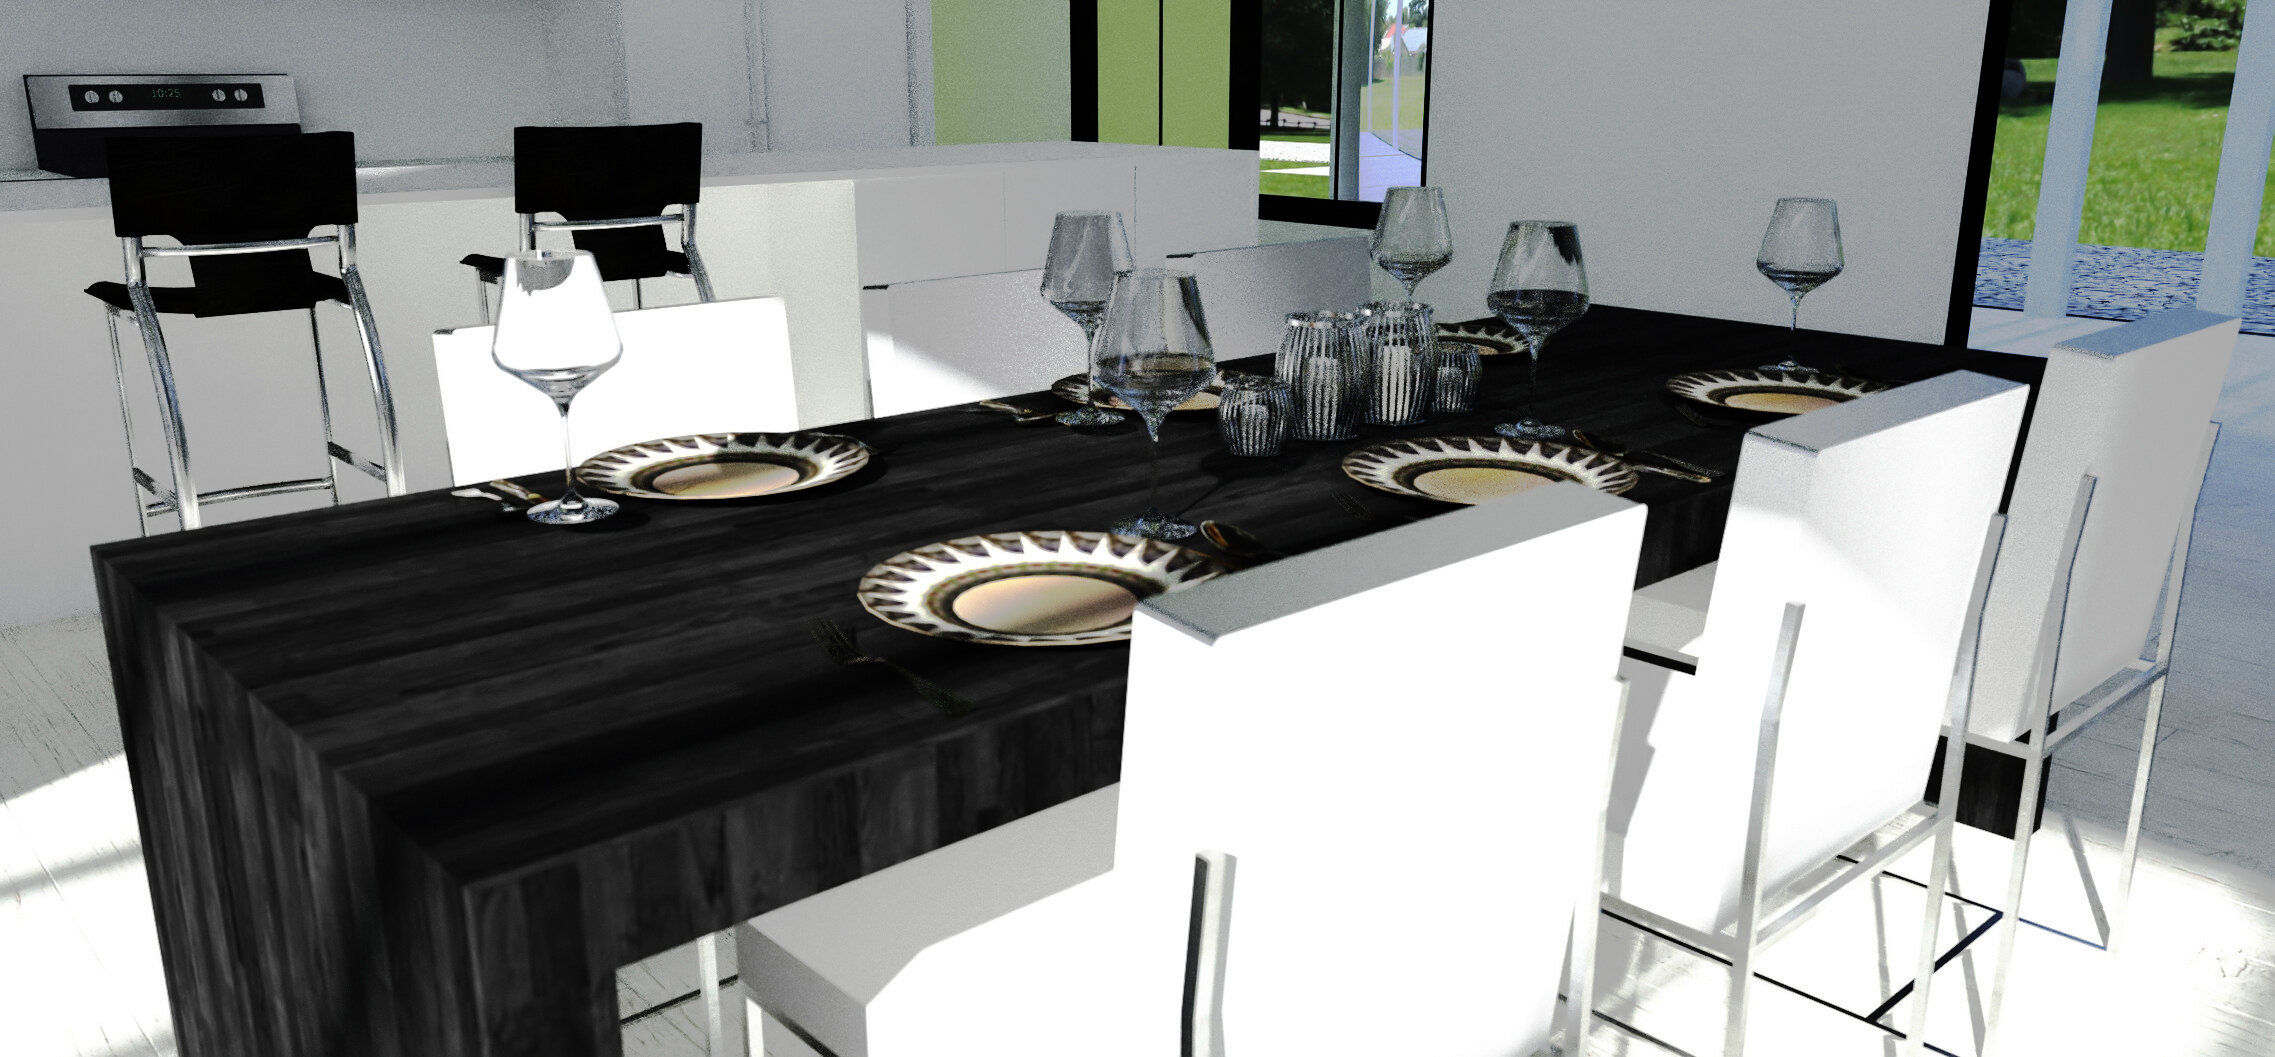 2 - dining table_corrected 2.jpg